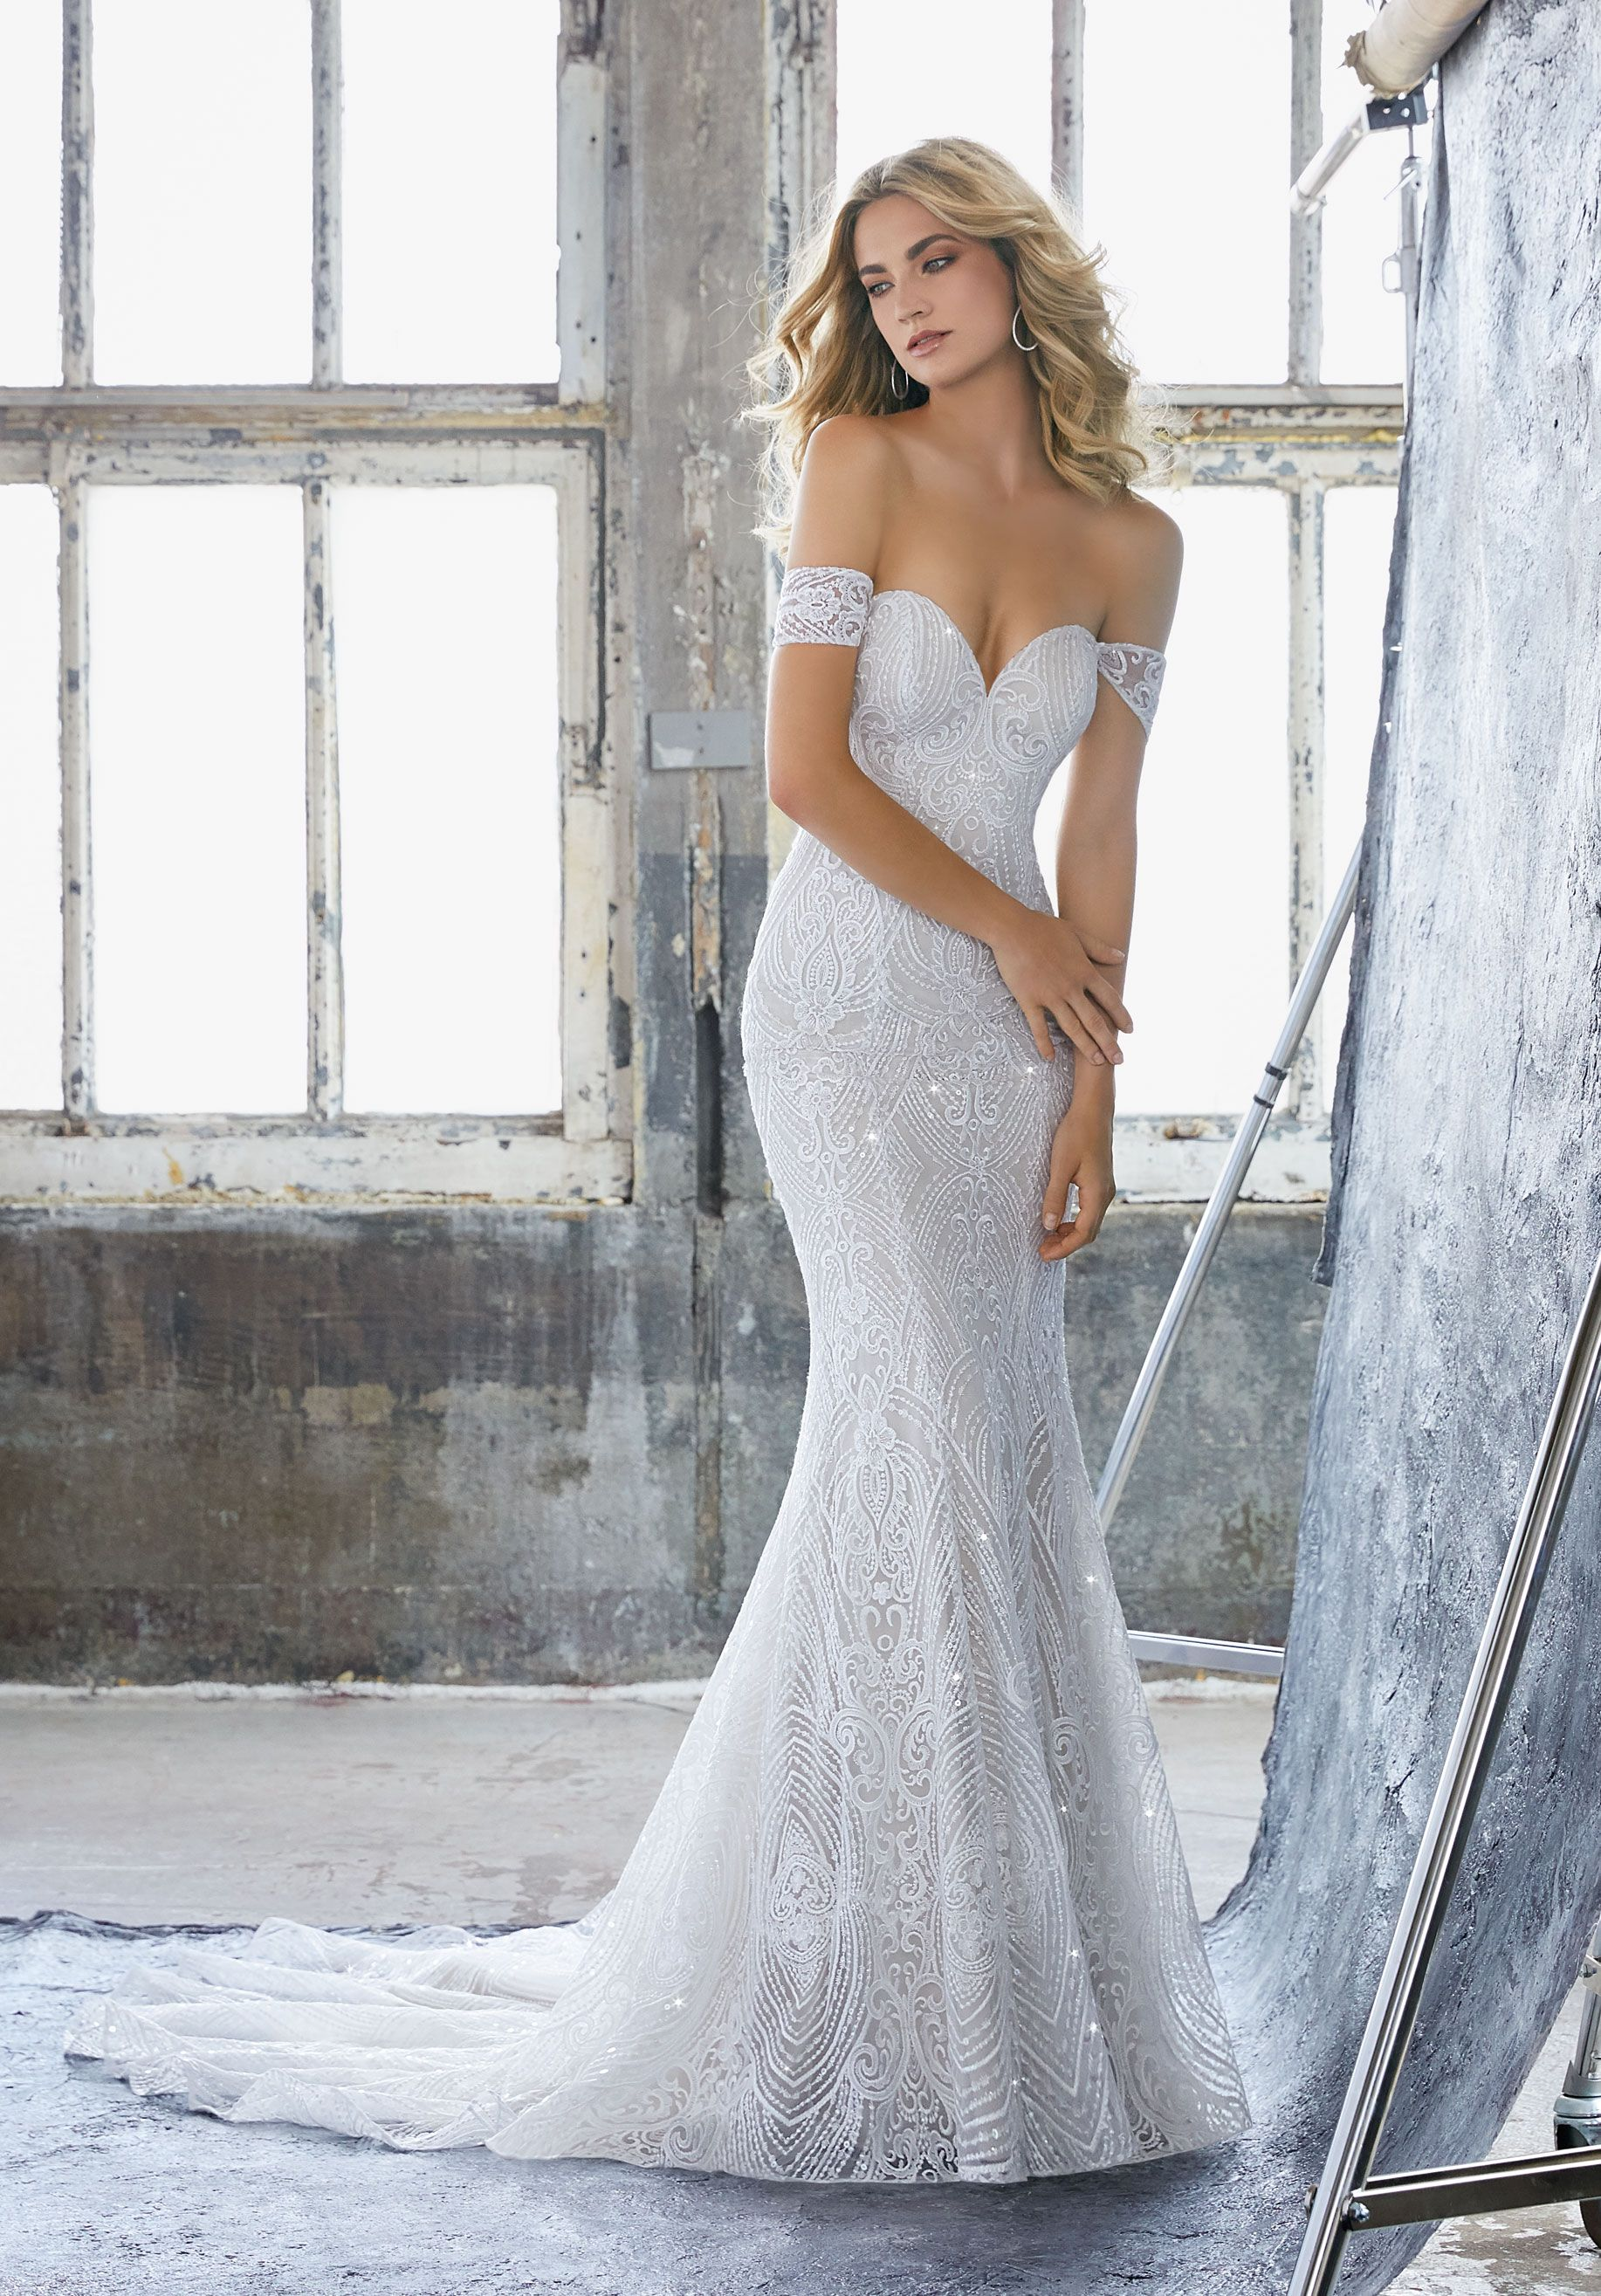 Mori Lee Karissa 8222 Frosted Deco Embroidery On Net Art Wedding Dress Dream